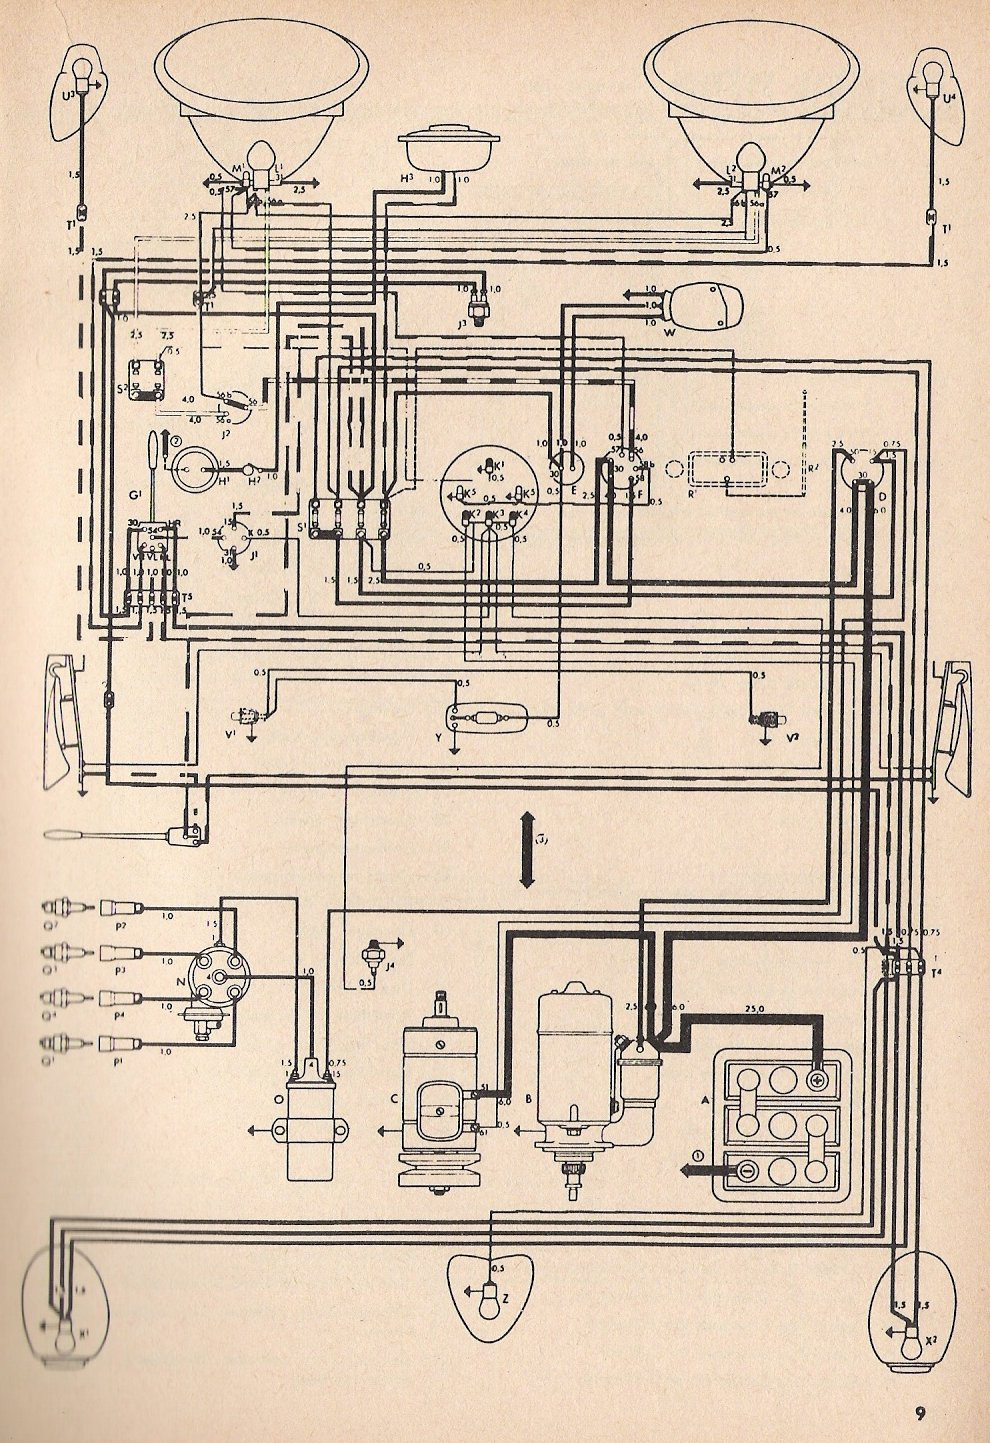 2013 Beetle Fuse Diagram Wiring Library Jetta Wire Thesamba Com Type 1 Diagrams Vw Layout 1971